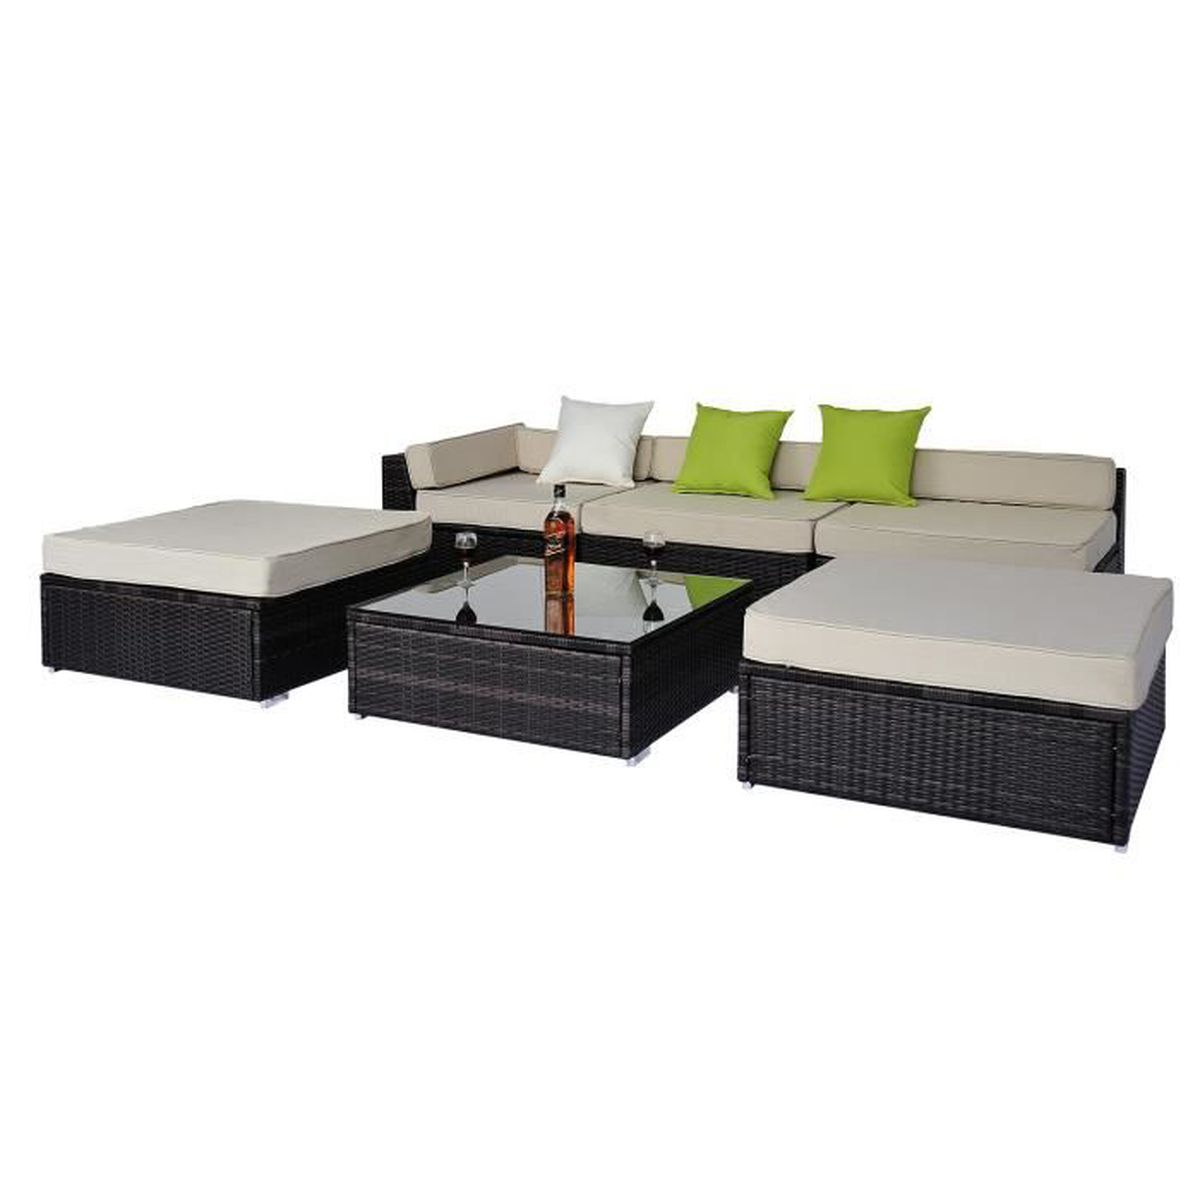 Salon De Jardin Complet Modulable Canap S Poufs Et Table Basse R Sine Tress E Imitation Rotin